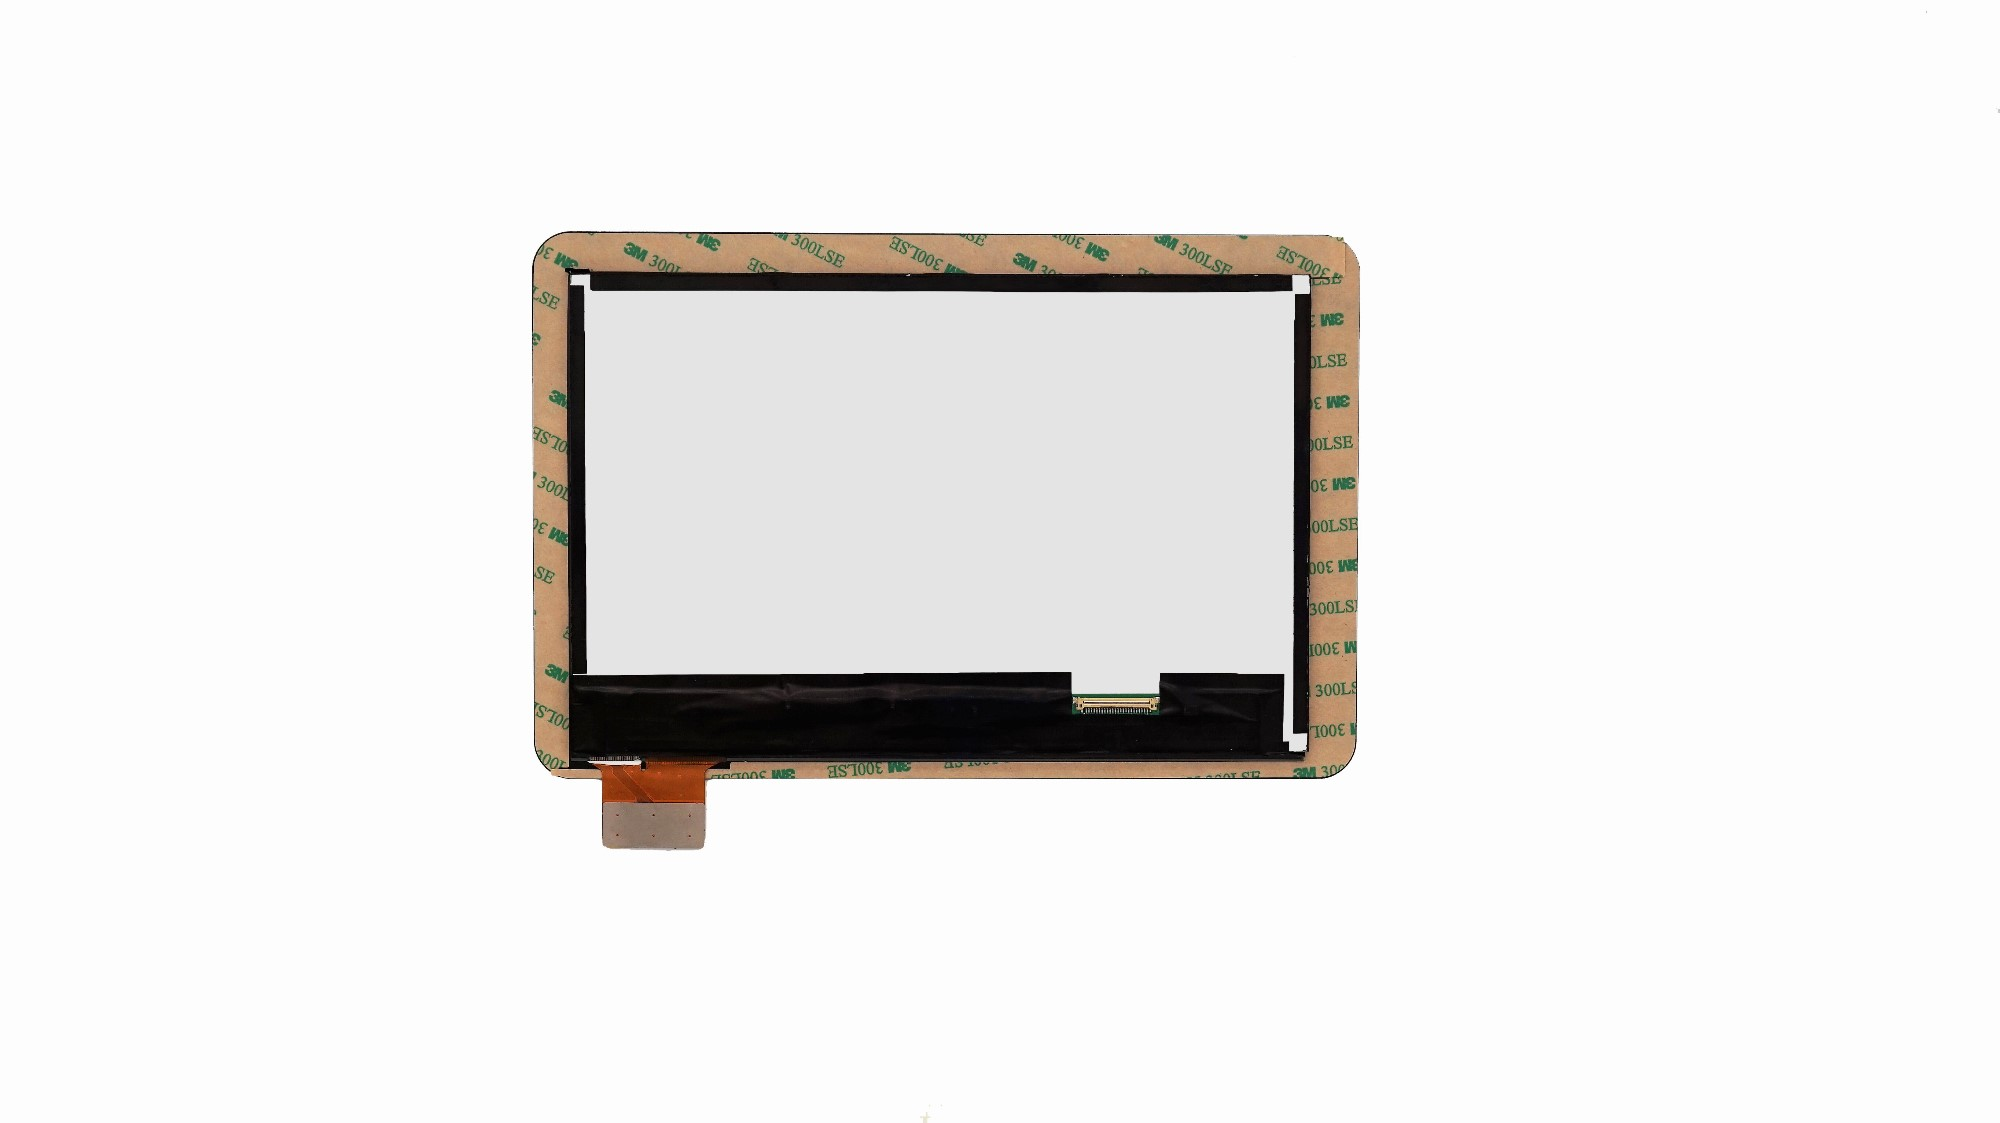 Custom China Ips 10.1 Inch Ctp With I2c Interface With Lcd, Ips 10.1 Inch Ctp With I2c Interface With Lcd Factory, Ips 10.1 Inch Ctp With I2c Interface With Lcd OEM